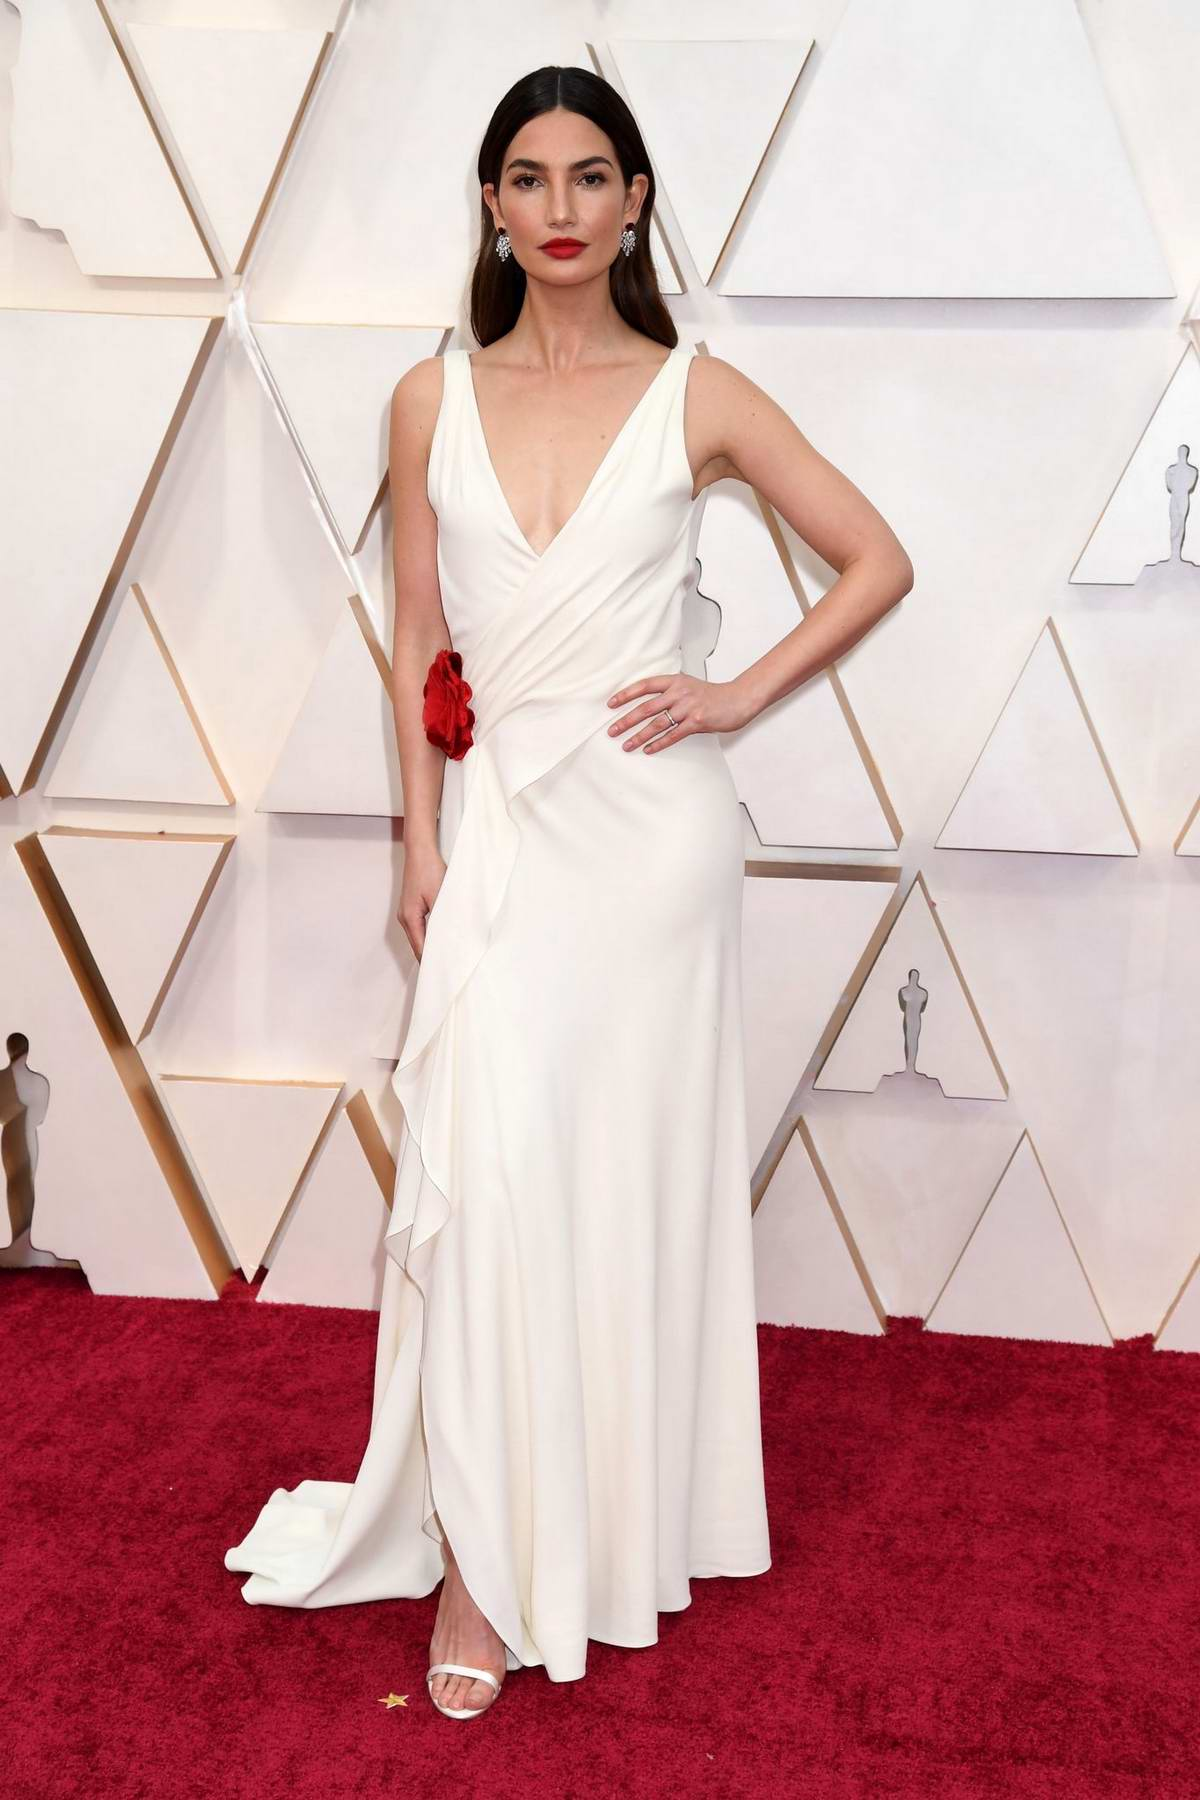 Lily Aldrige attends the 92nd Annual Academy Awards at Dolby Theatre in Los Angeles